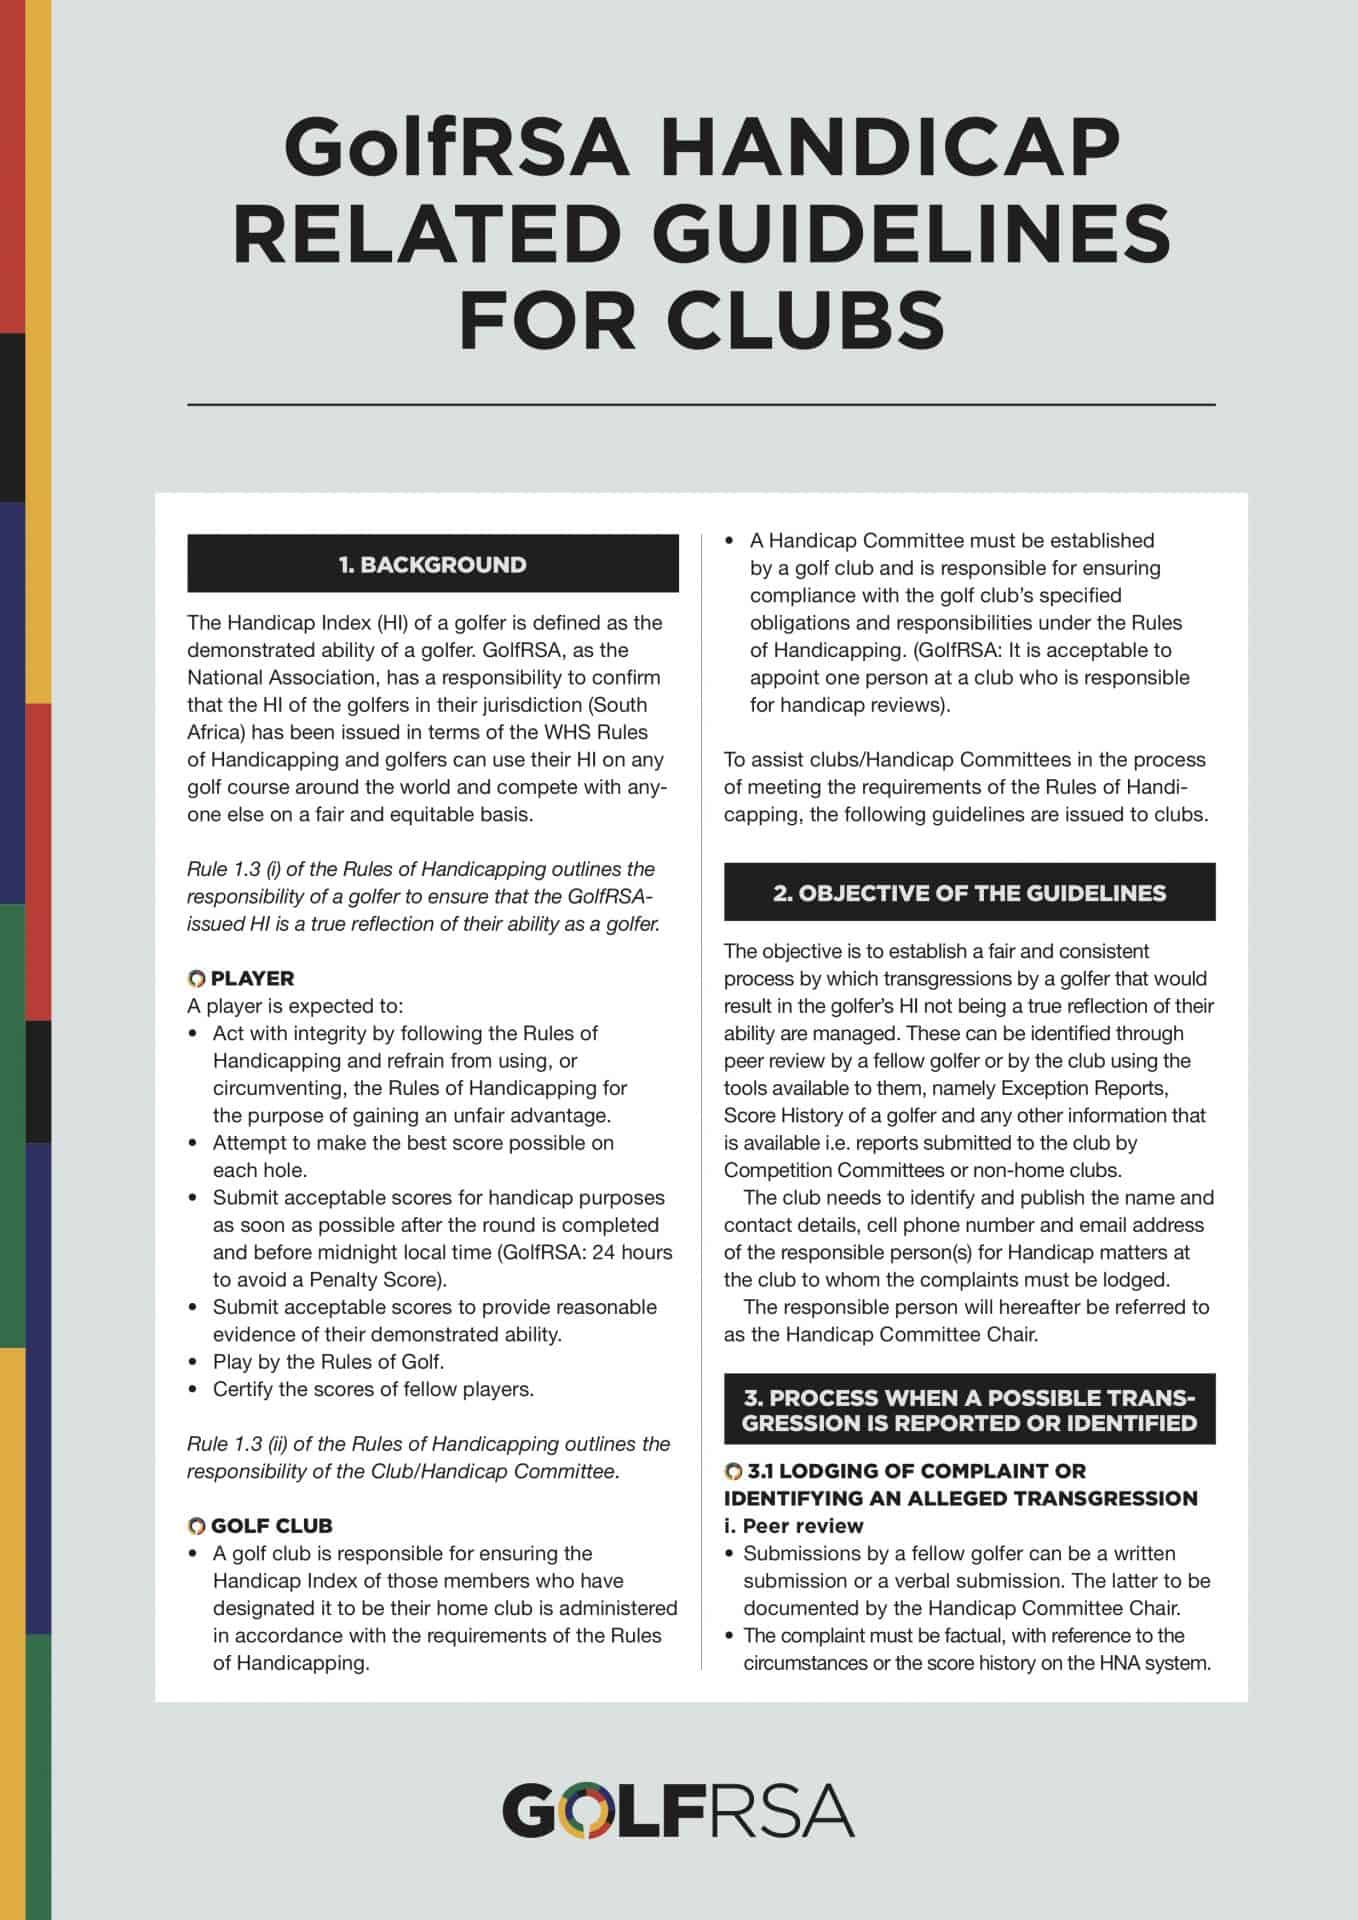 GolfRSA Handicap Related Guidelines for Clubs - 1